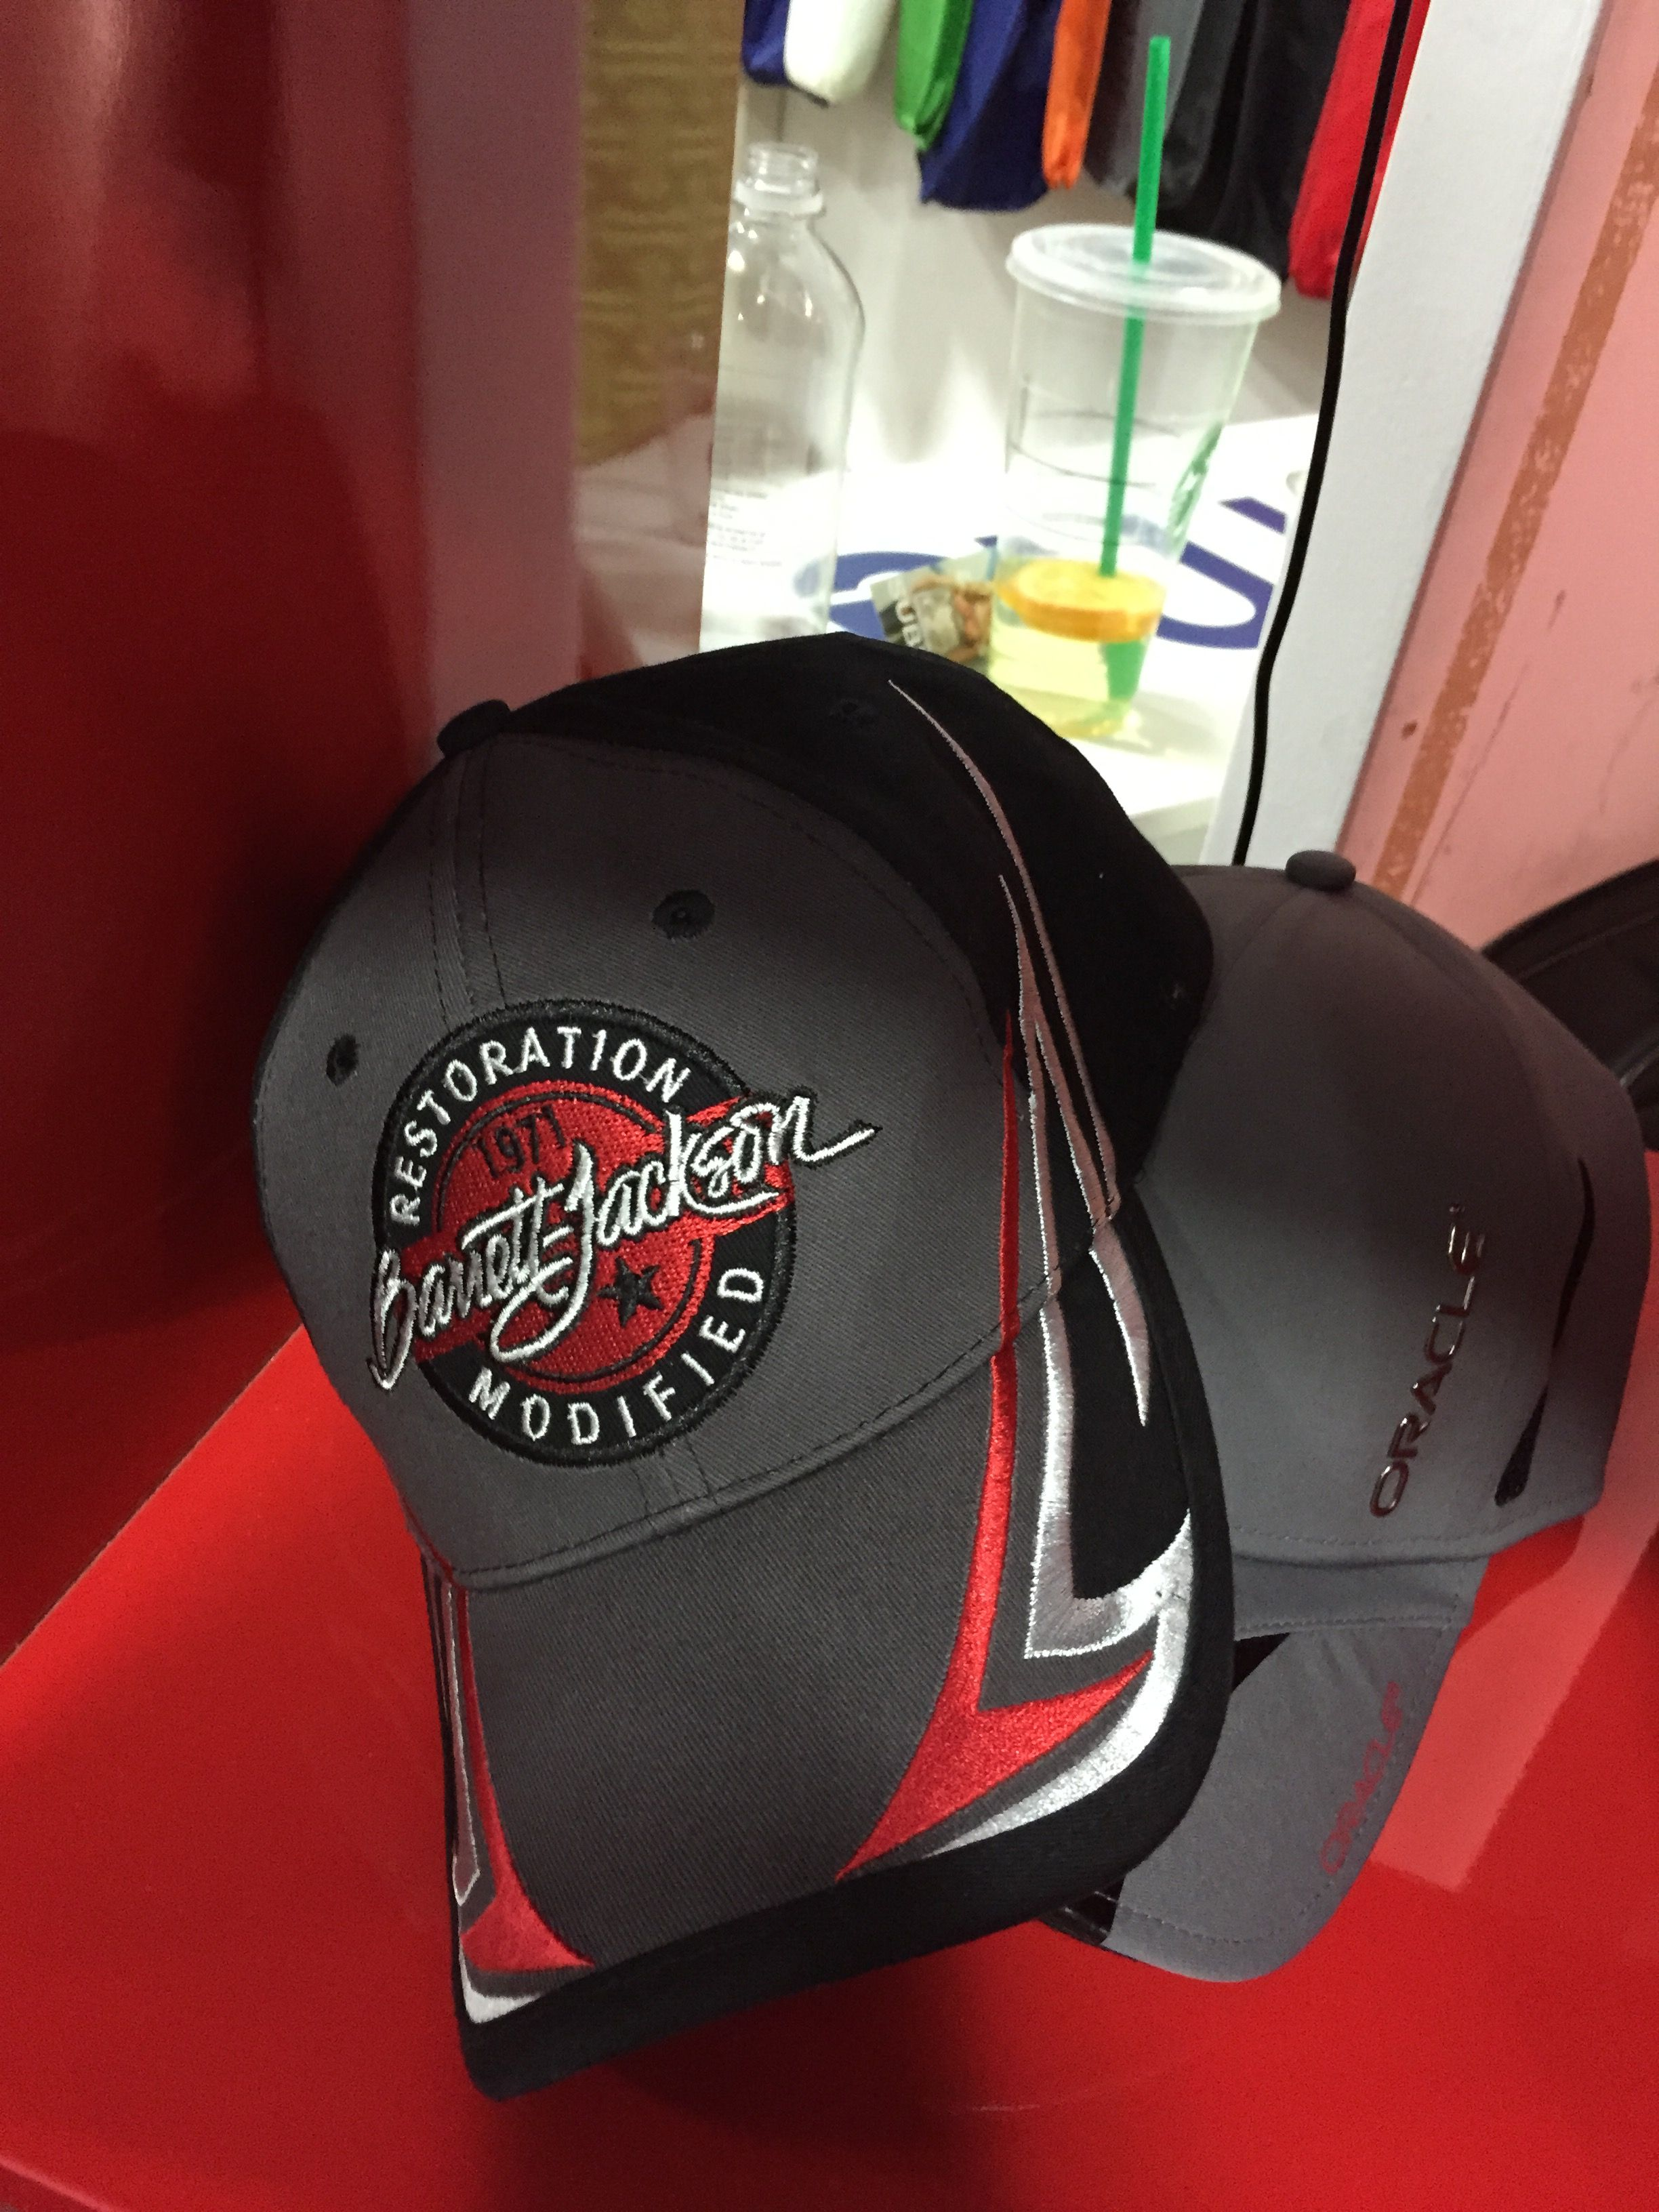 042d60f4663 These cool new hat will have heads turning with you companies logo.  Interested call EMG at 253-6170-0395 just like the style let us know.